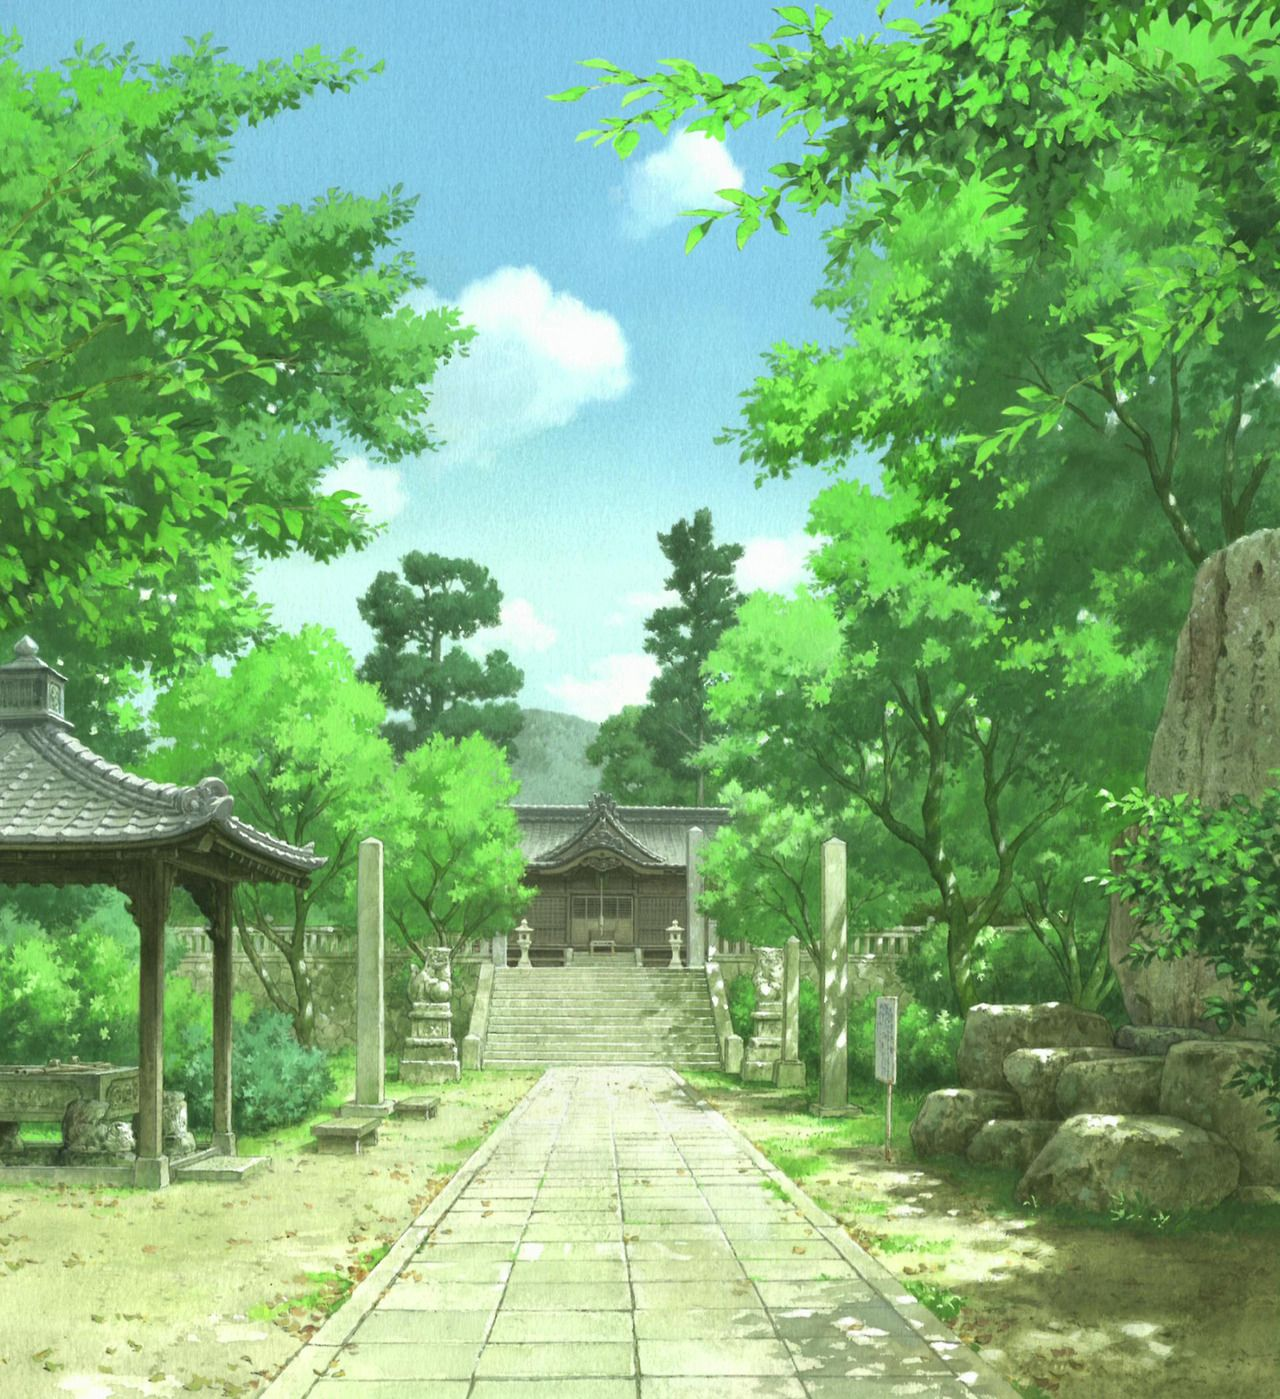 Animebackgrounds A Letter to Momo. Directed by Hiroyuki